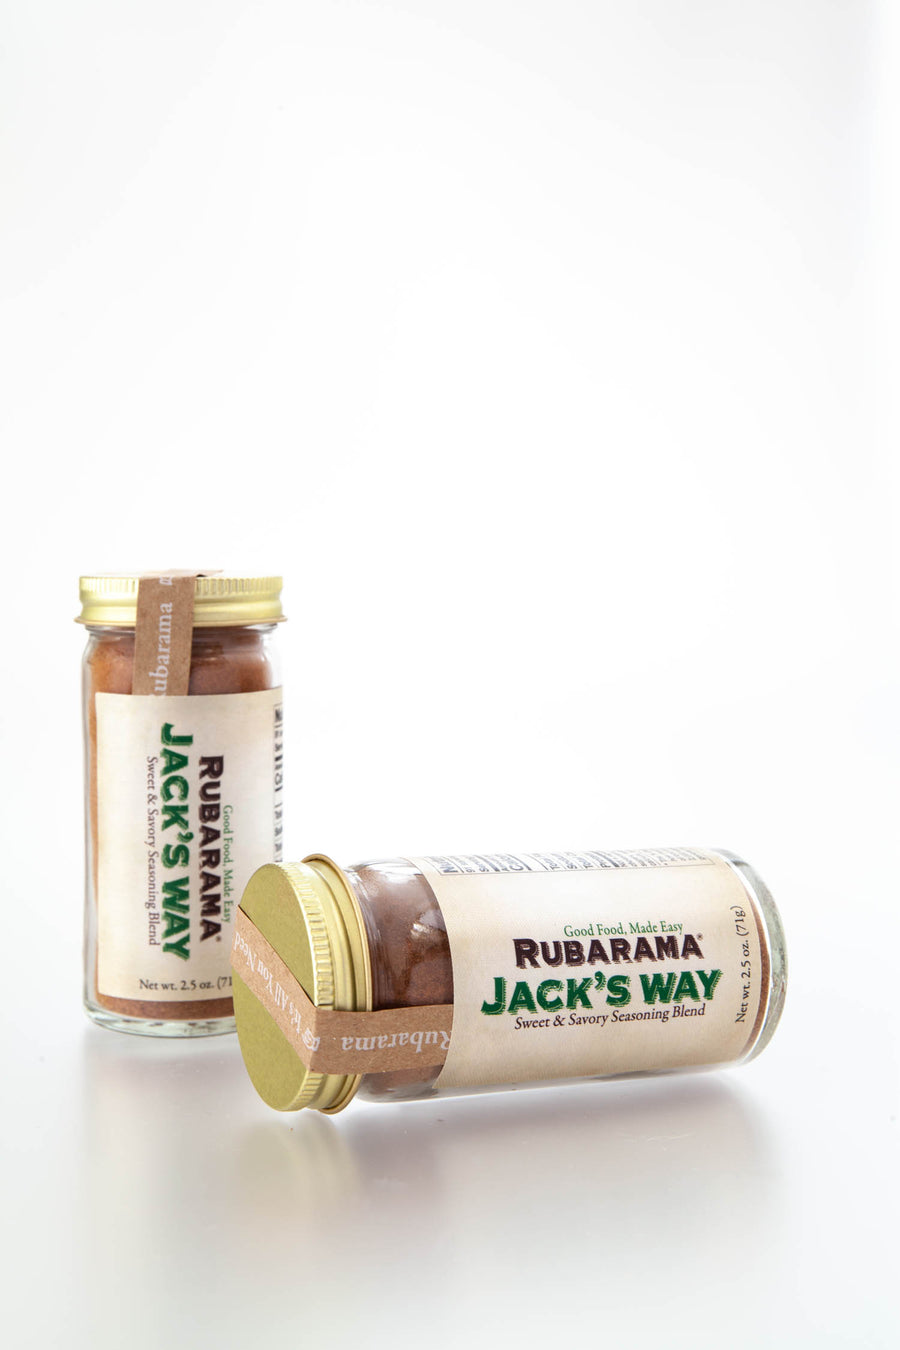 Rubarama's Jack's Way Blend in a glass bottle with shaker fitment. All US made packaging and labeling.